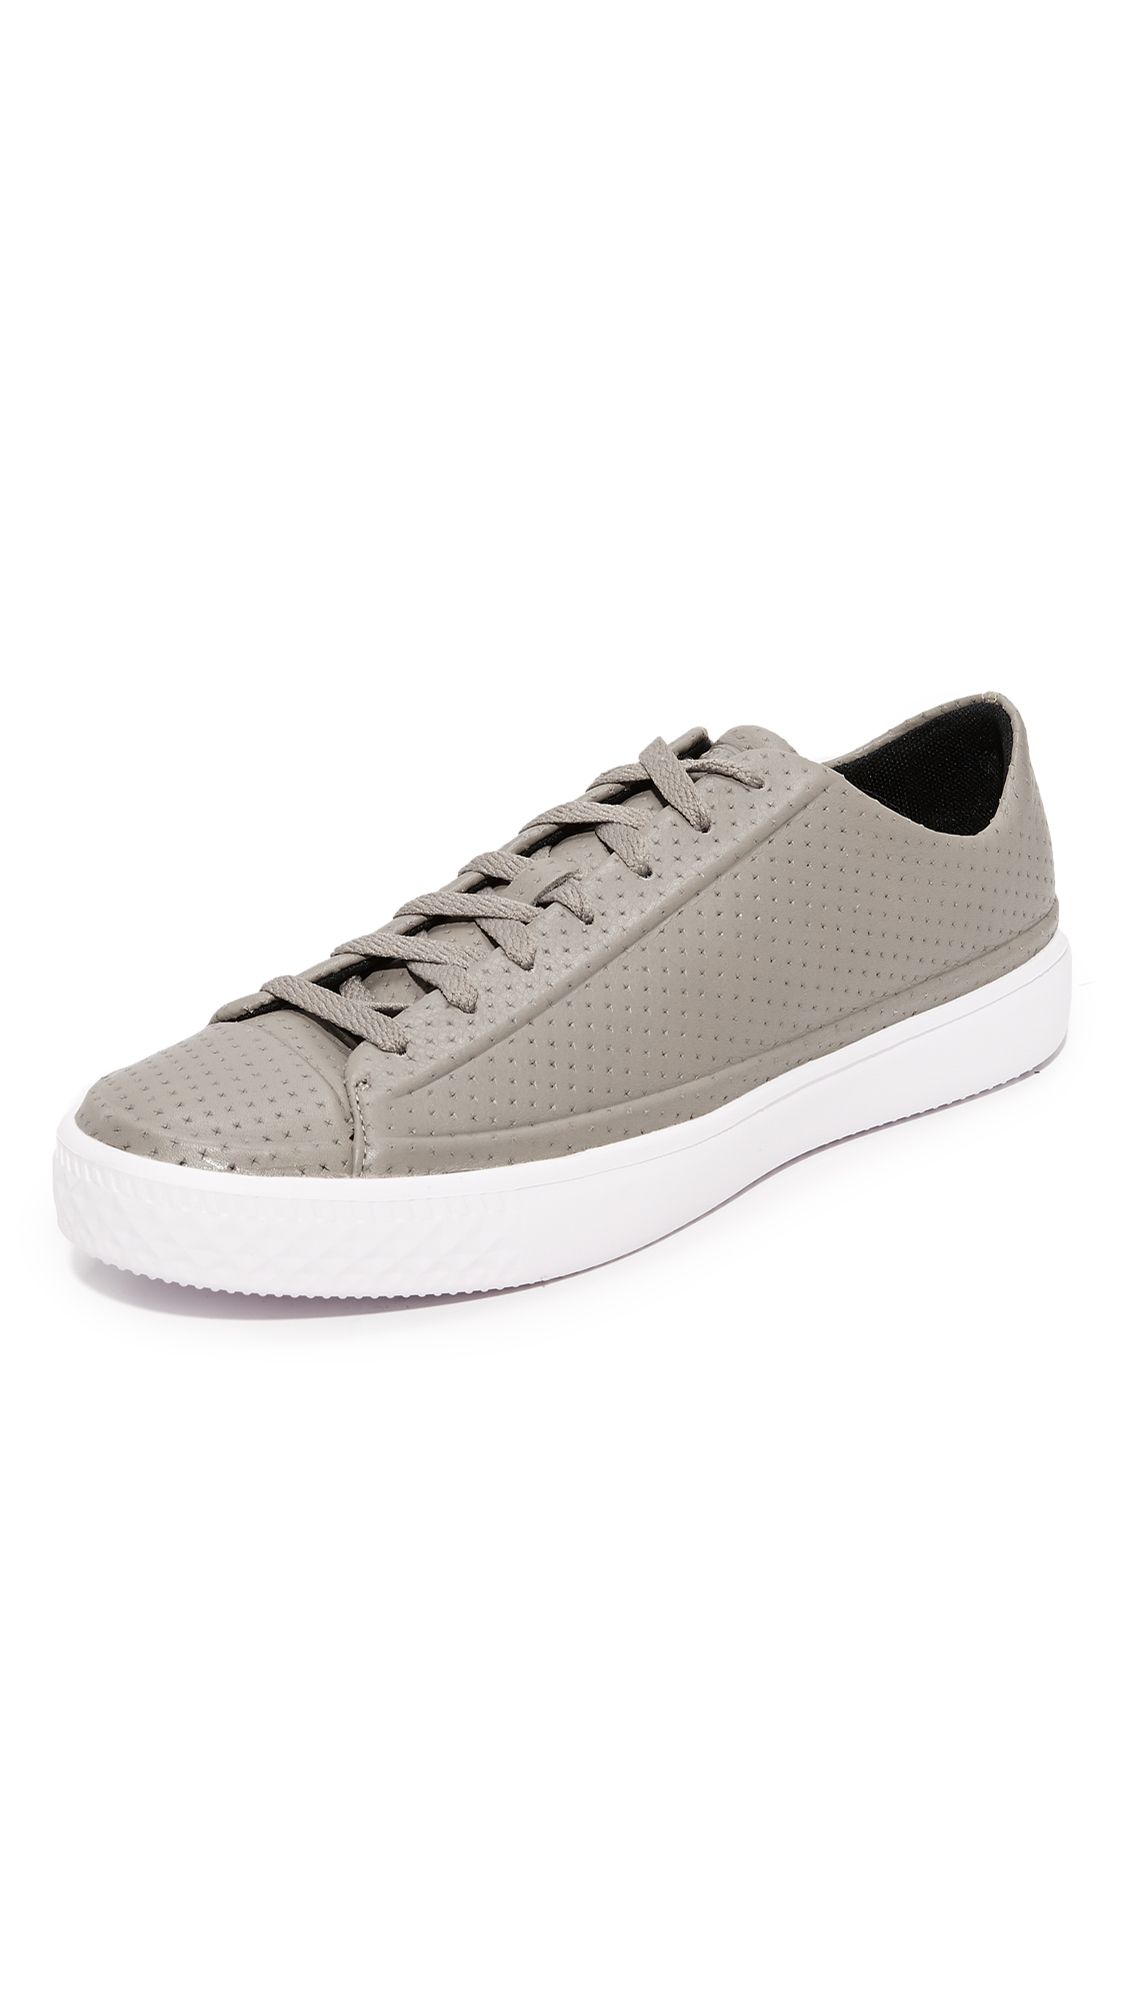 681d6953ffc92e CONVERSE Chuck Modern Perforated Leather Sneakers.  converse  shoes   sneakers